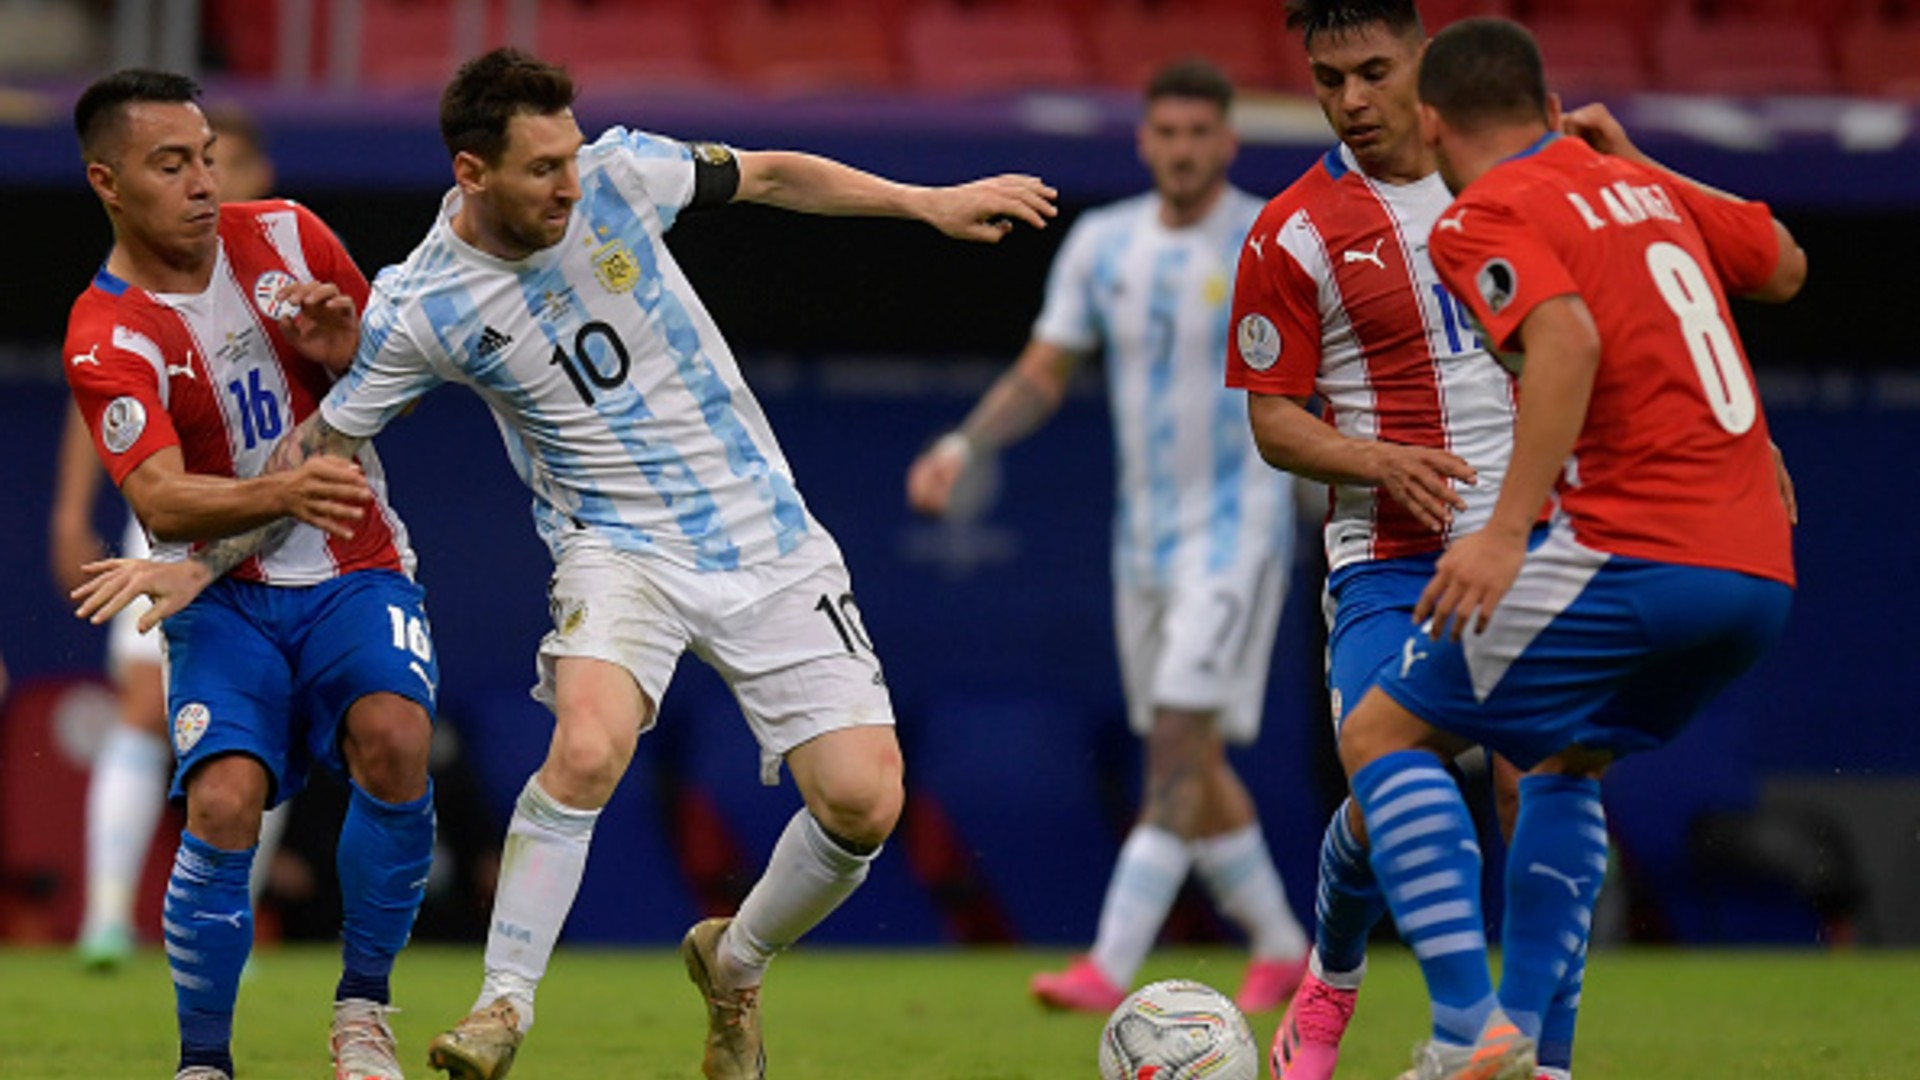 How to watch Bolivia vs Argentina in the Copa America 2021 from India?